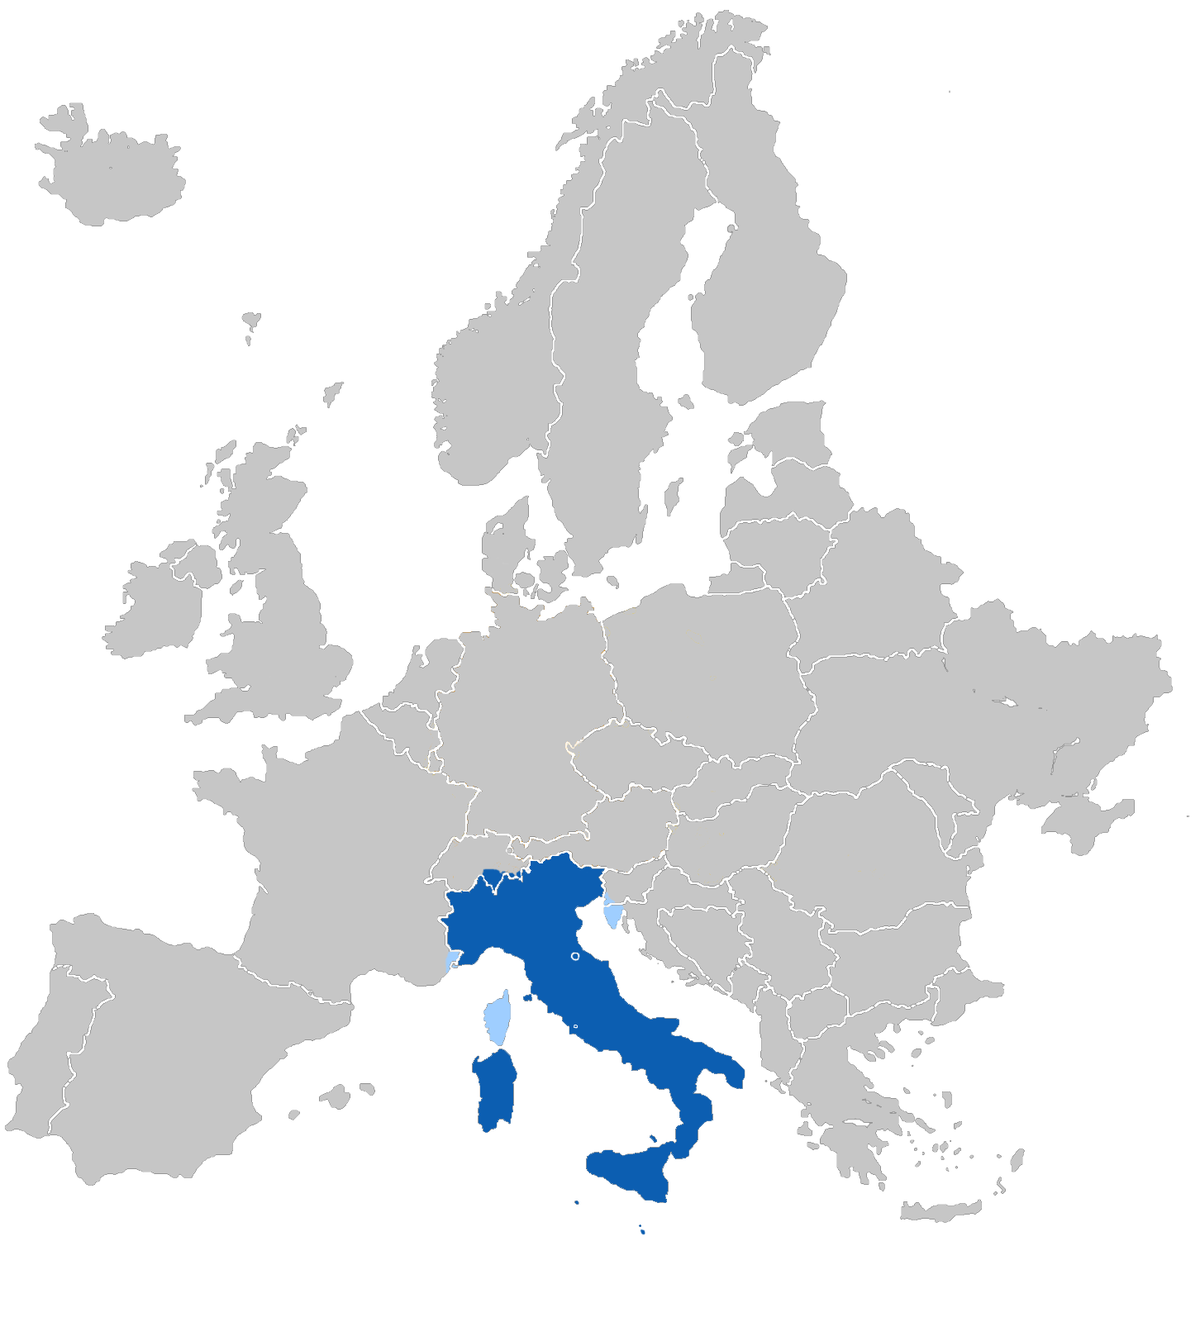 Map Of Italy Simple.Italian Language Simple English Wikipedia The Free Encyclopedia